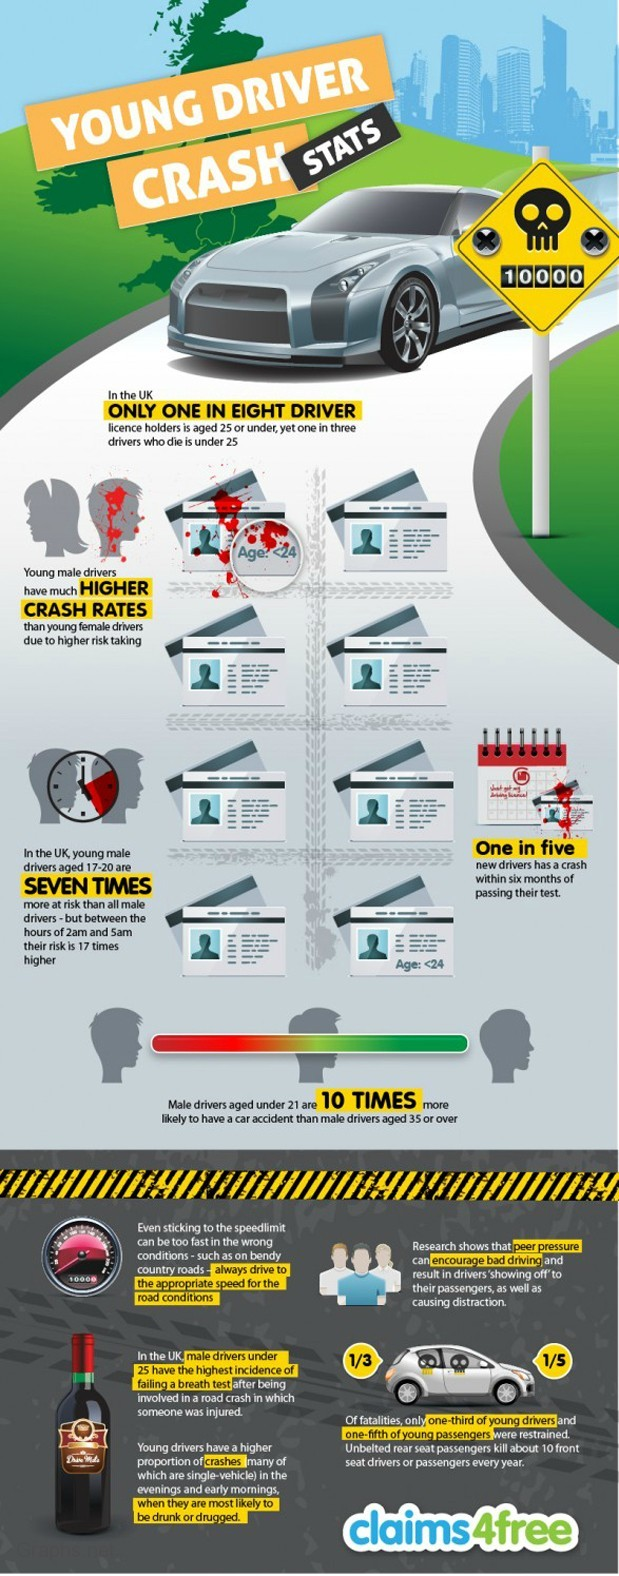 Statistics of crashes by young drivers